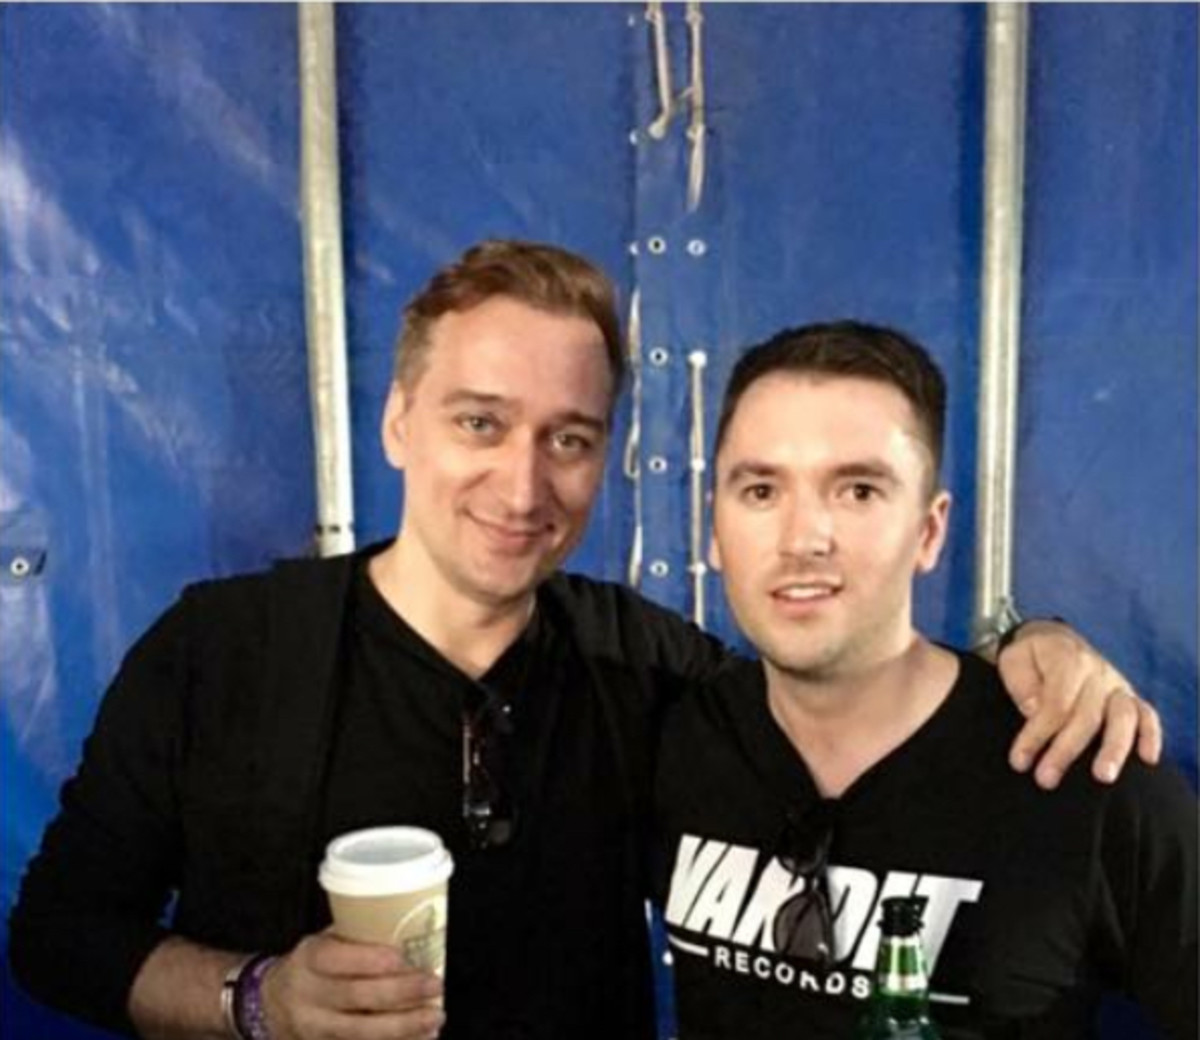 Paul van Dyk and James Cottle